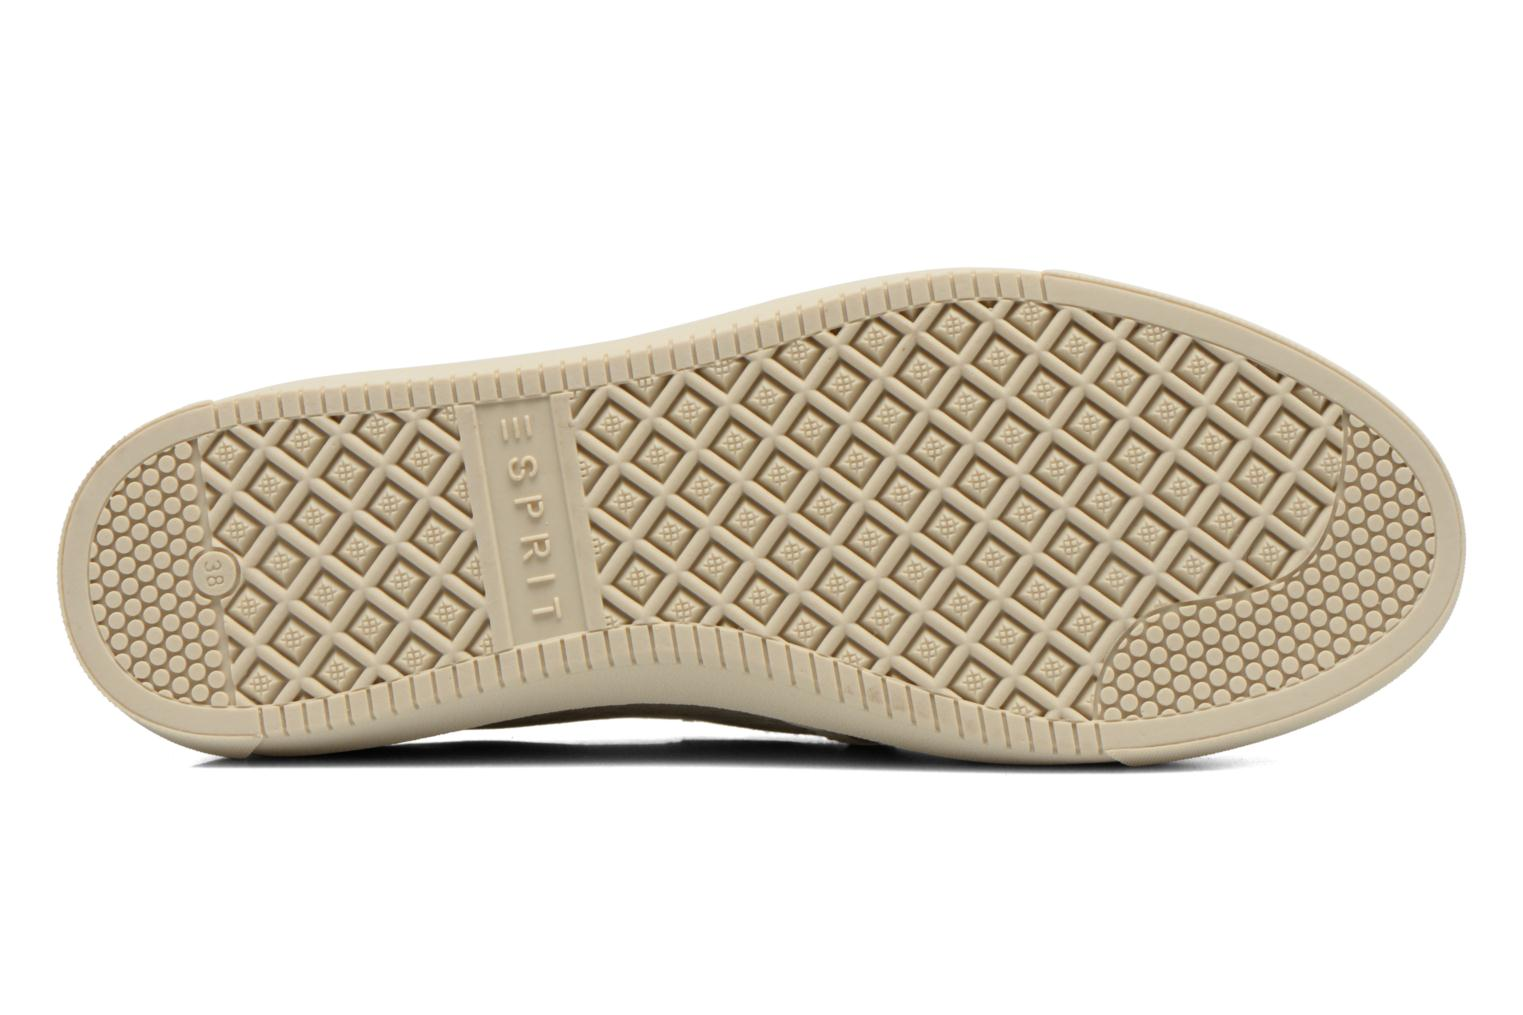 Trainers Esprit Yendis Slip on 009 Beige view from above